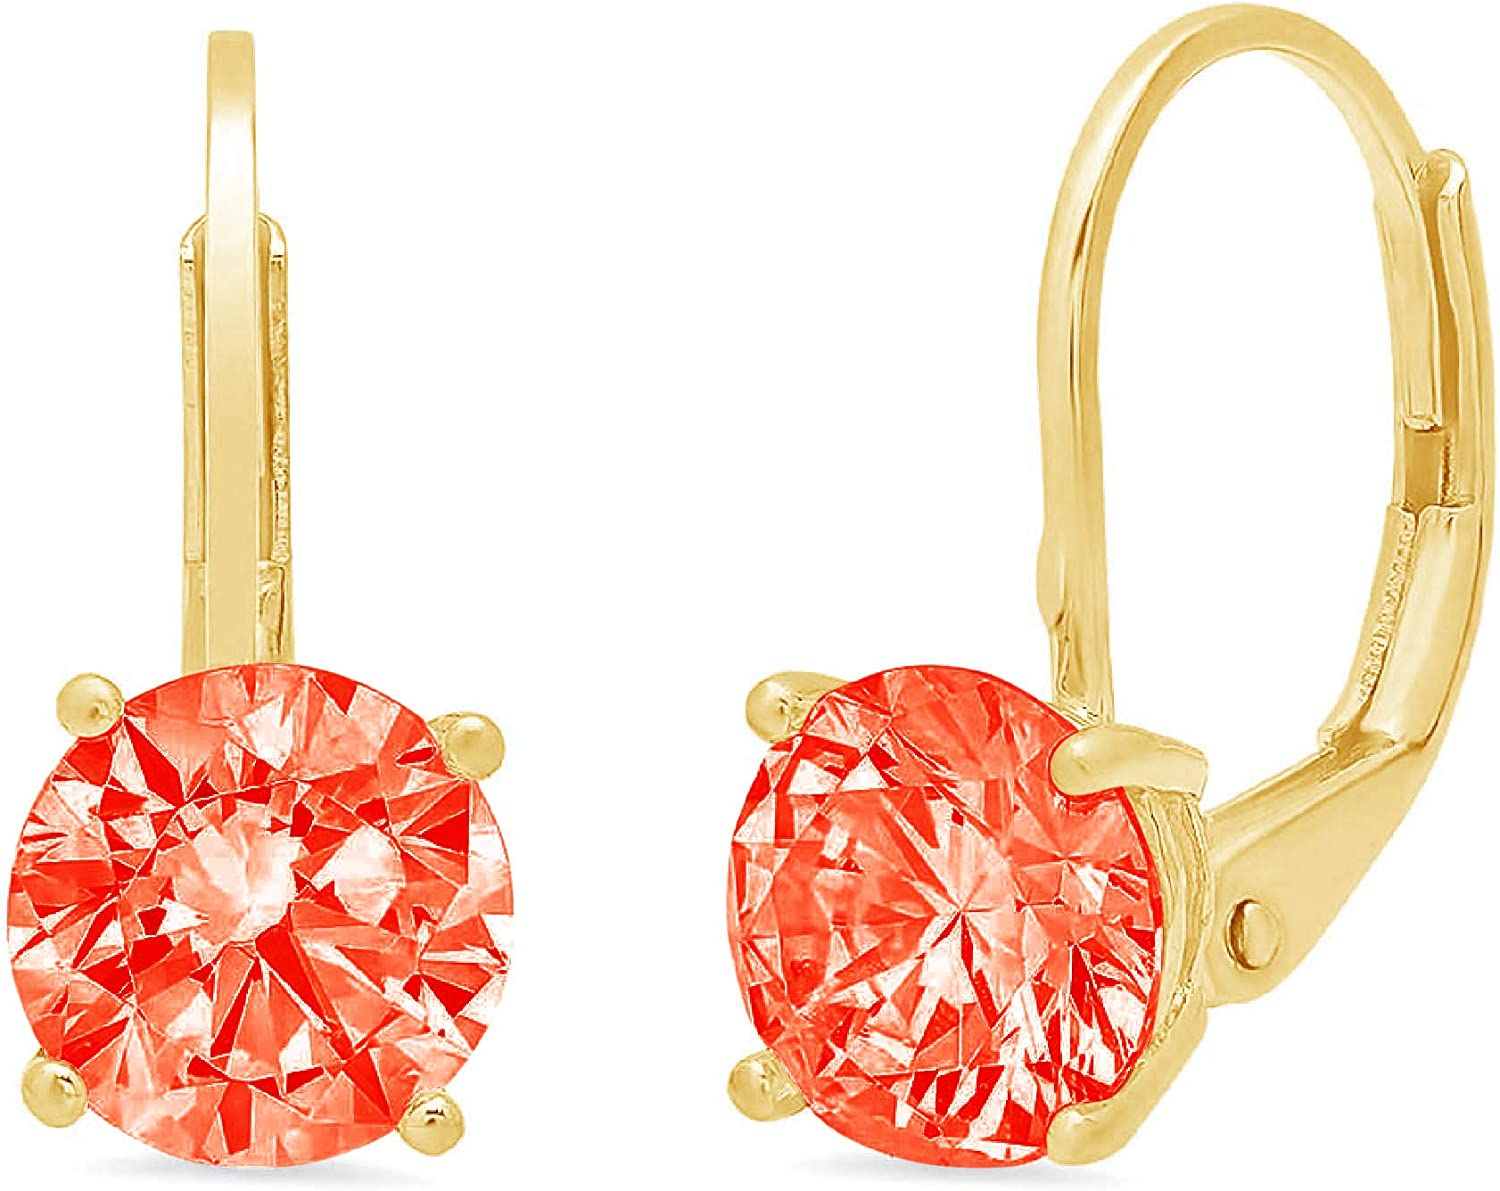 Clara Pucci 1.0 ct Brilliant Round Cut Solitaire VVS1 Flawless Red Simulated Diamond Gemstone Pair of Lever back Drop Dangle Earrings Solid 18K Yellow Gold